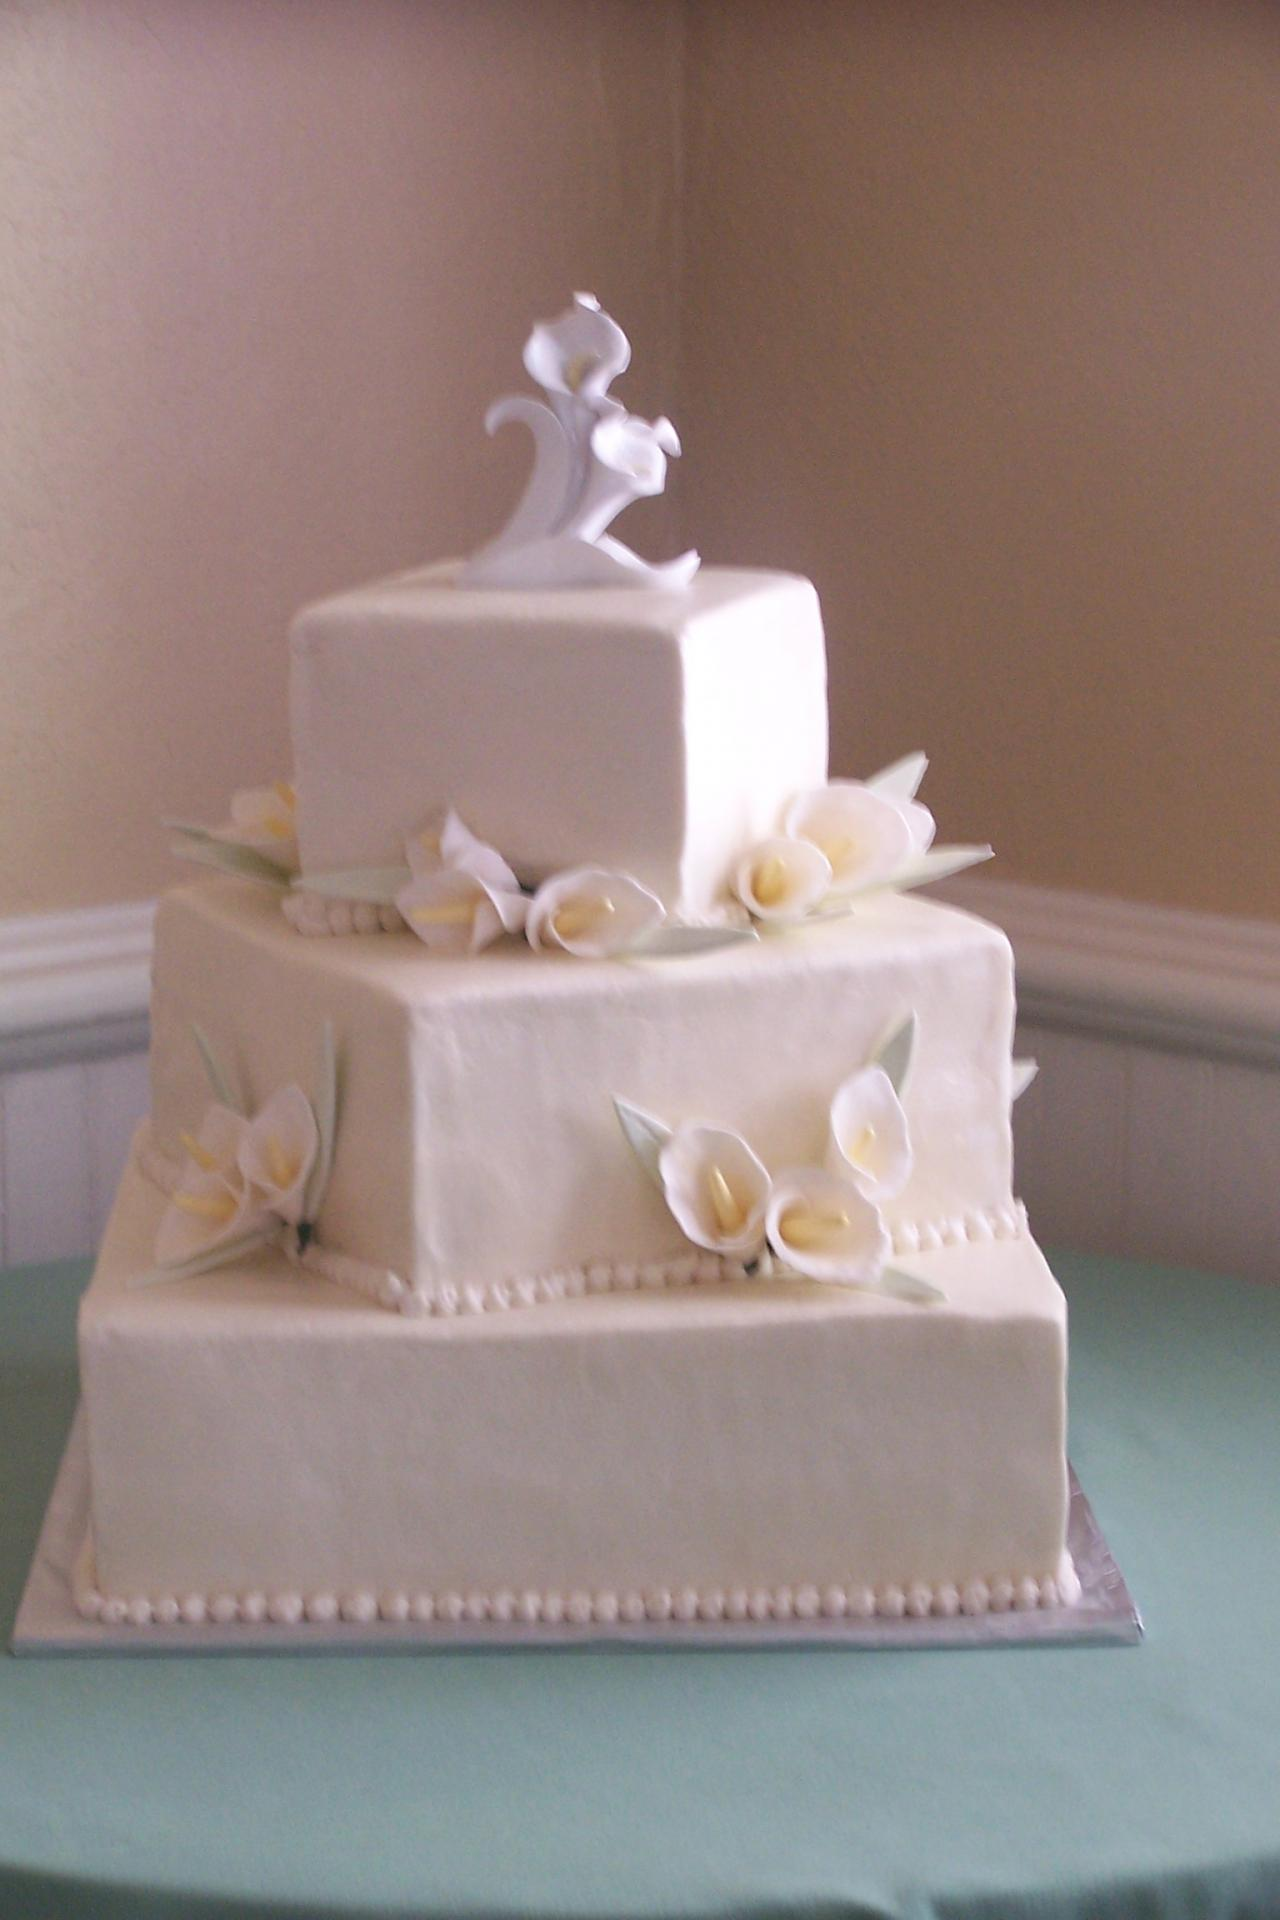 Just Desserts Bakery and Cafe - Wedding Cake Gallery